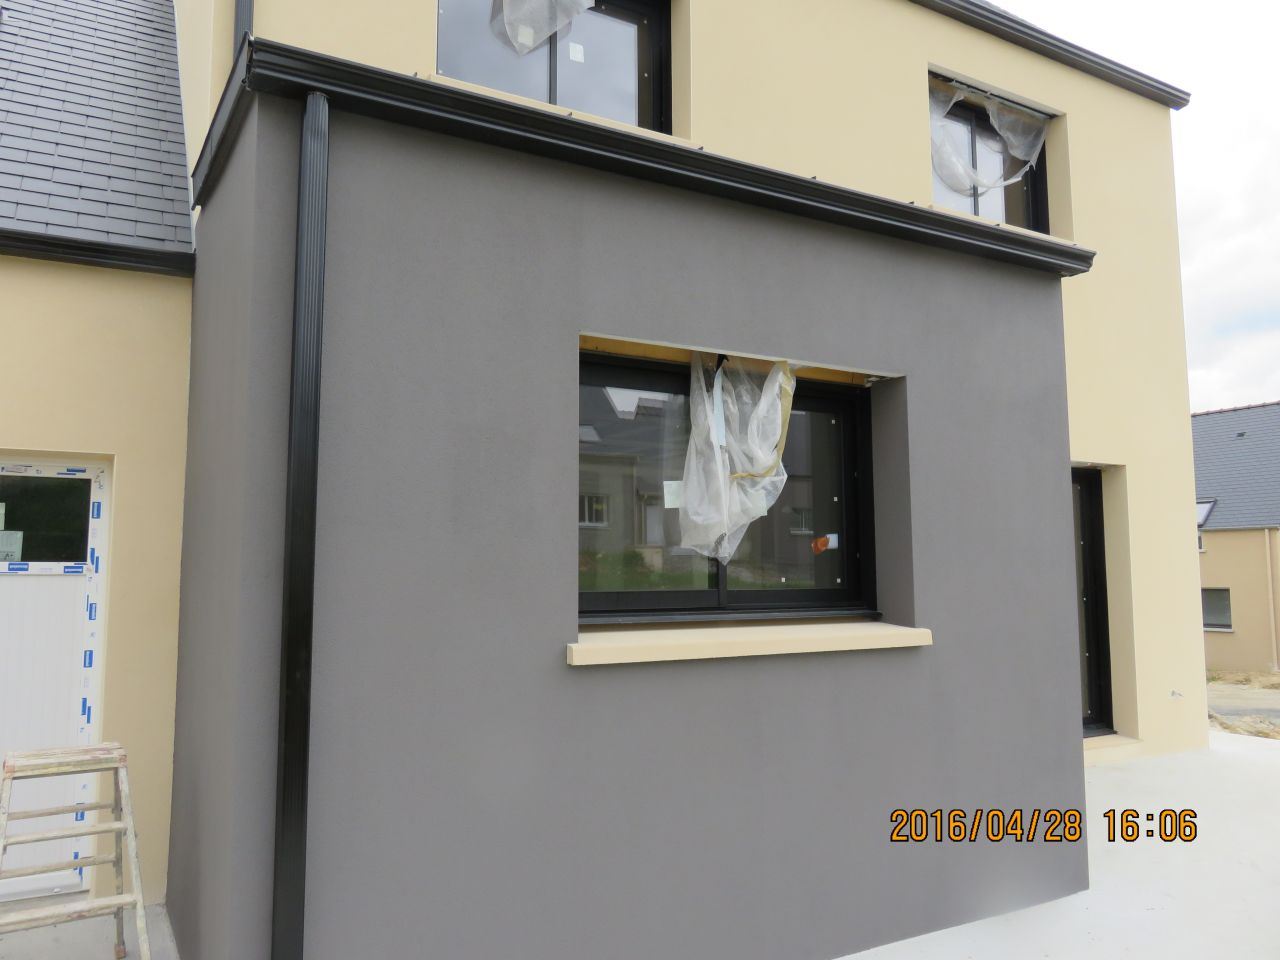 enduit de facade gris enduit facade gris clair maison design photos de maisons neuves couleur. Black Bedroom Furniture Sets. Home Design Ideas